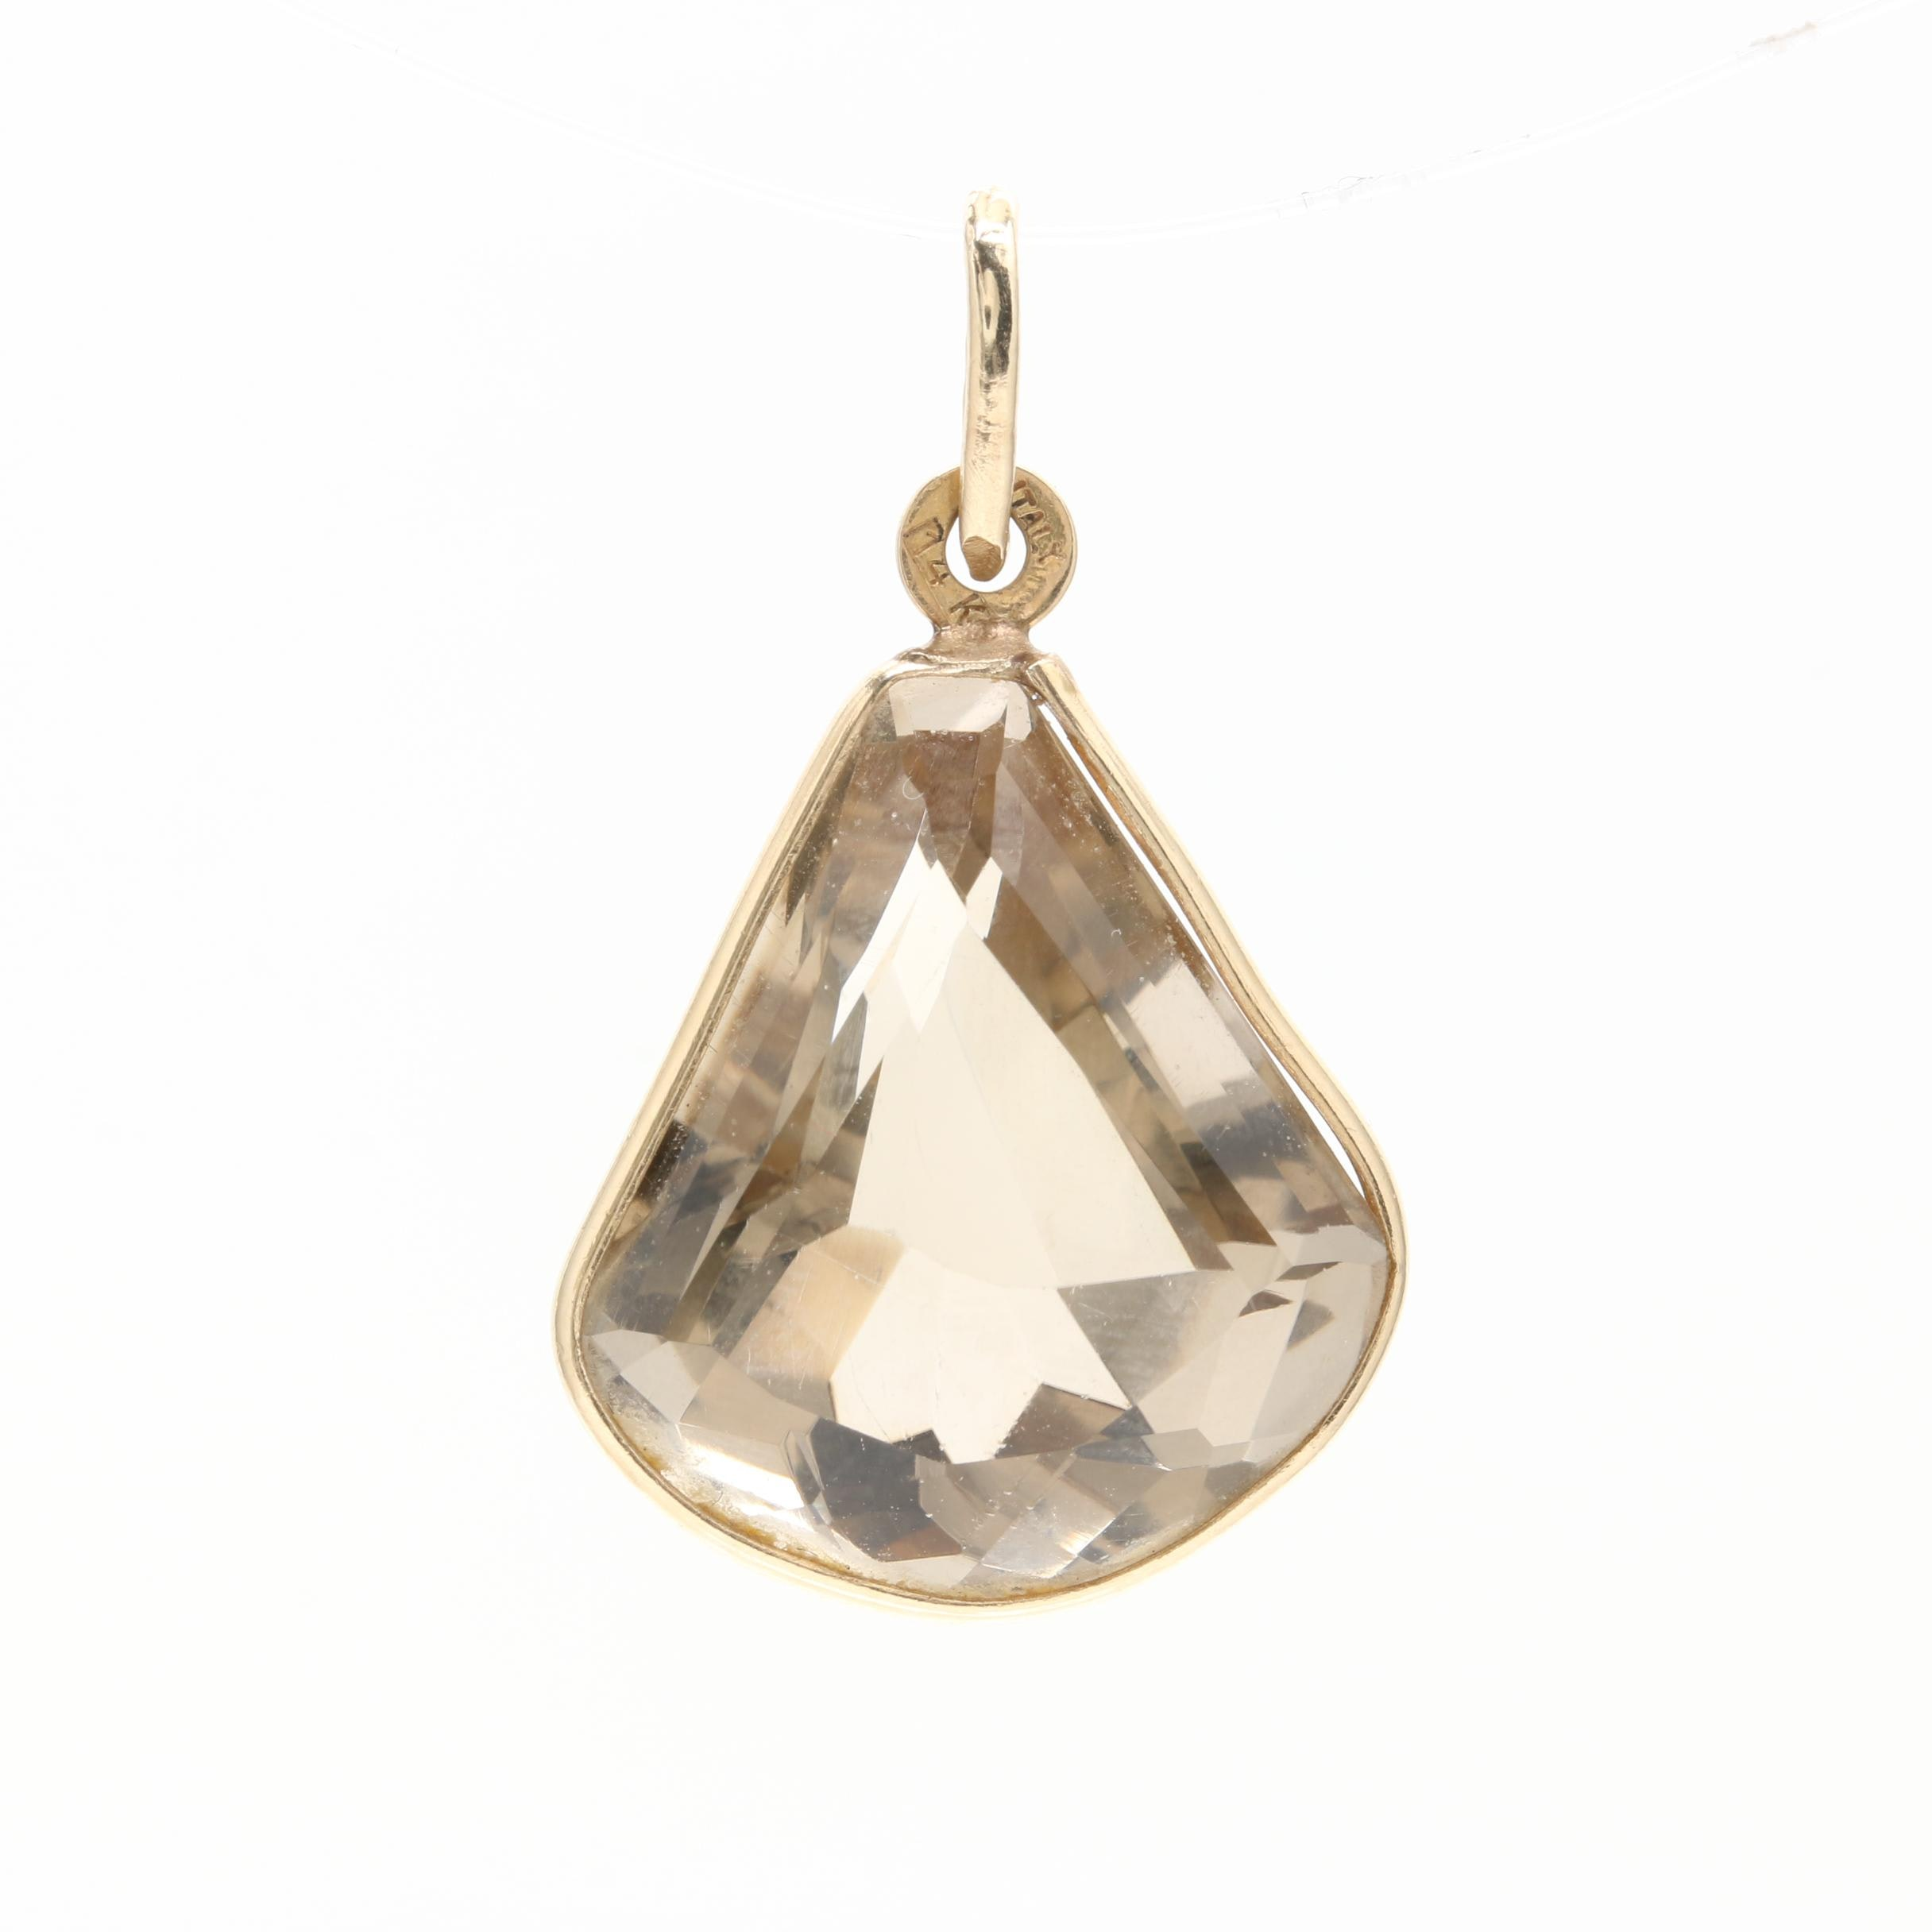 14K Yellow Gold 23.00 CT Smoky Quartz Pendant